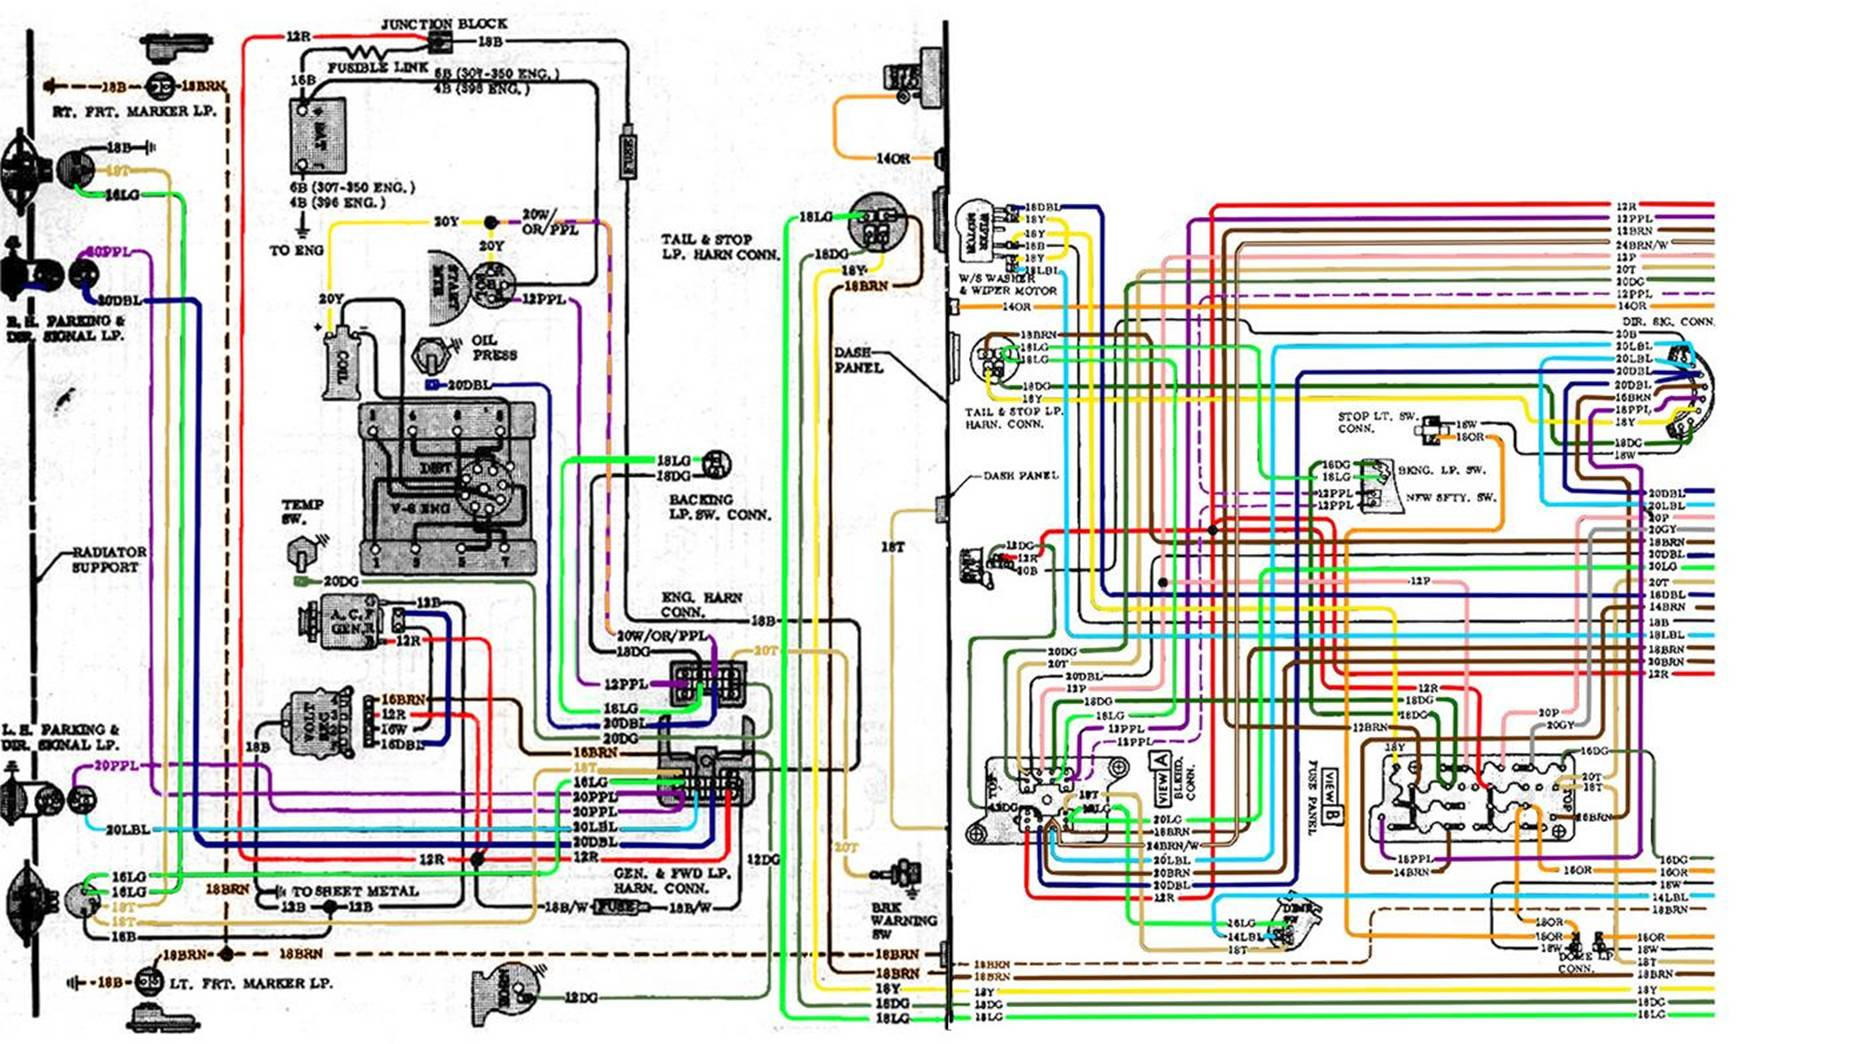 hight resolution of 1971 chevelle wiring diagram wiring diagram query 1971 chevelle wiring diagram wiring diagram forward 1971 chevelle